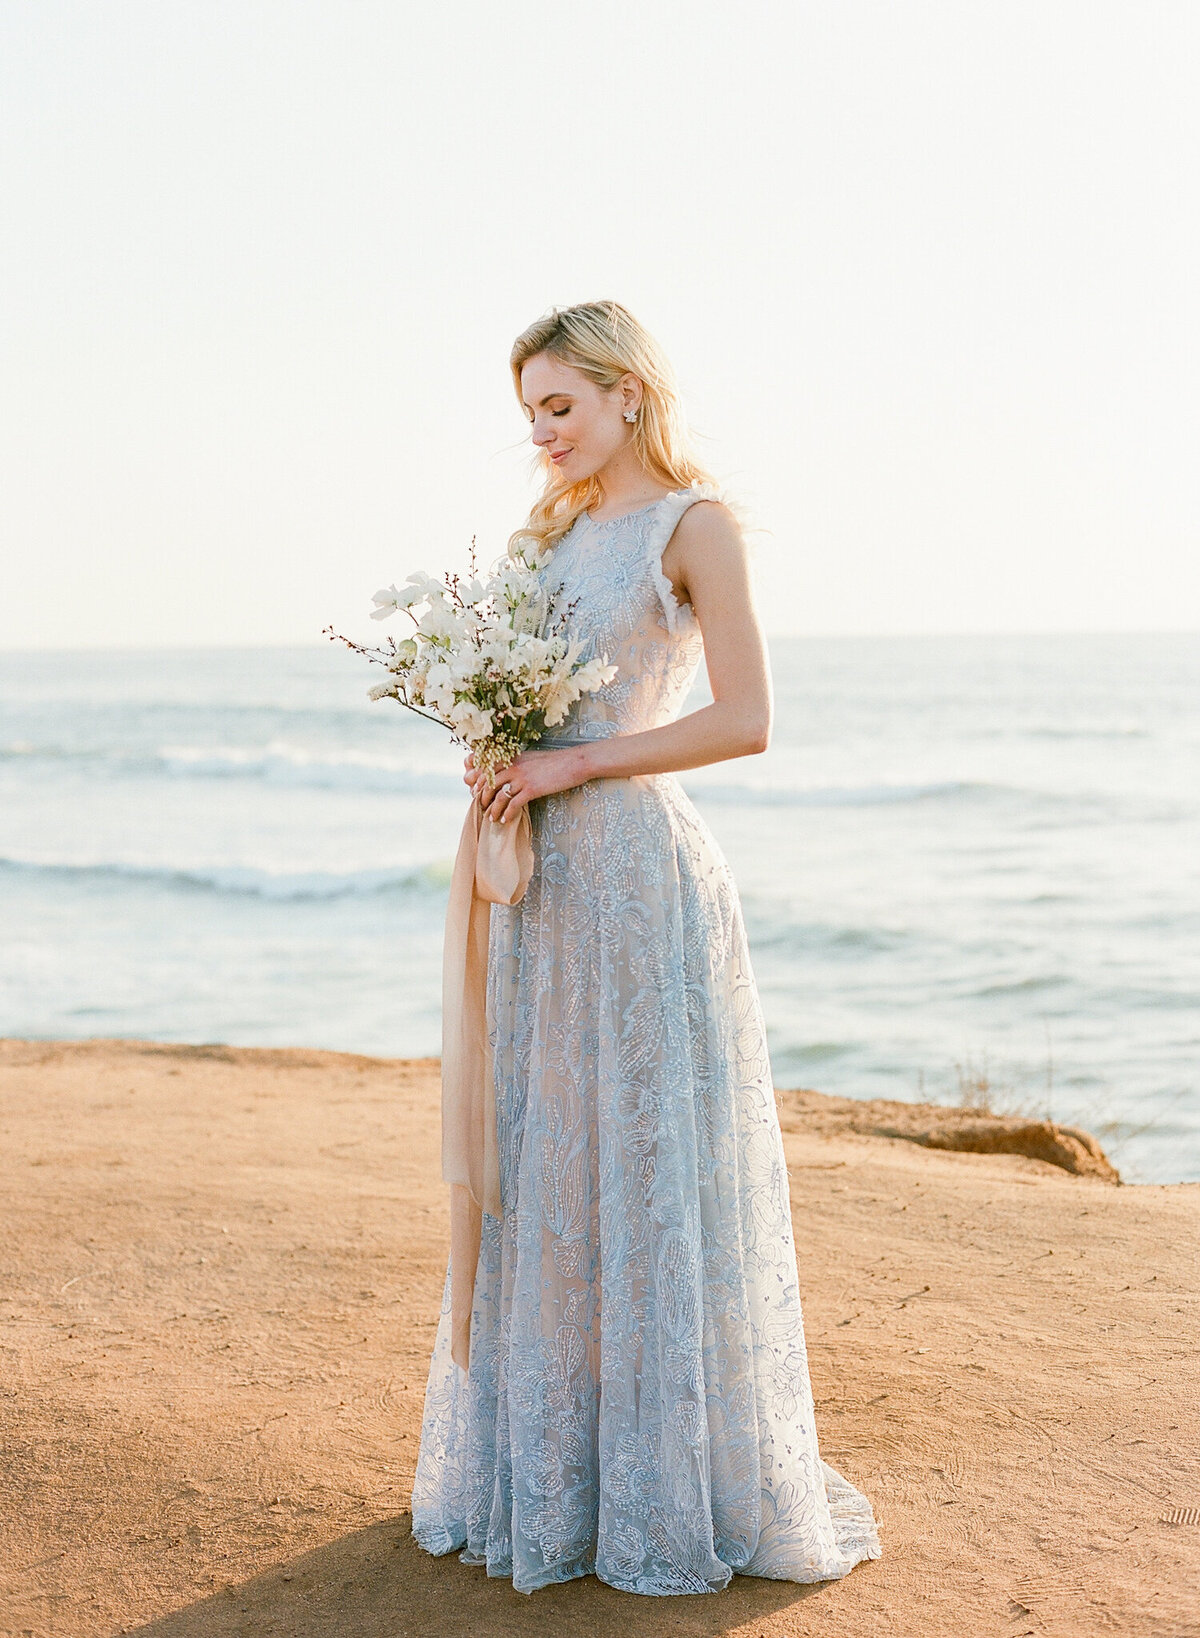 San-Diego-Coastal-Wedding-Megan-Travis-Photography-83